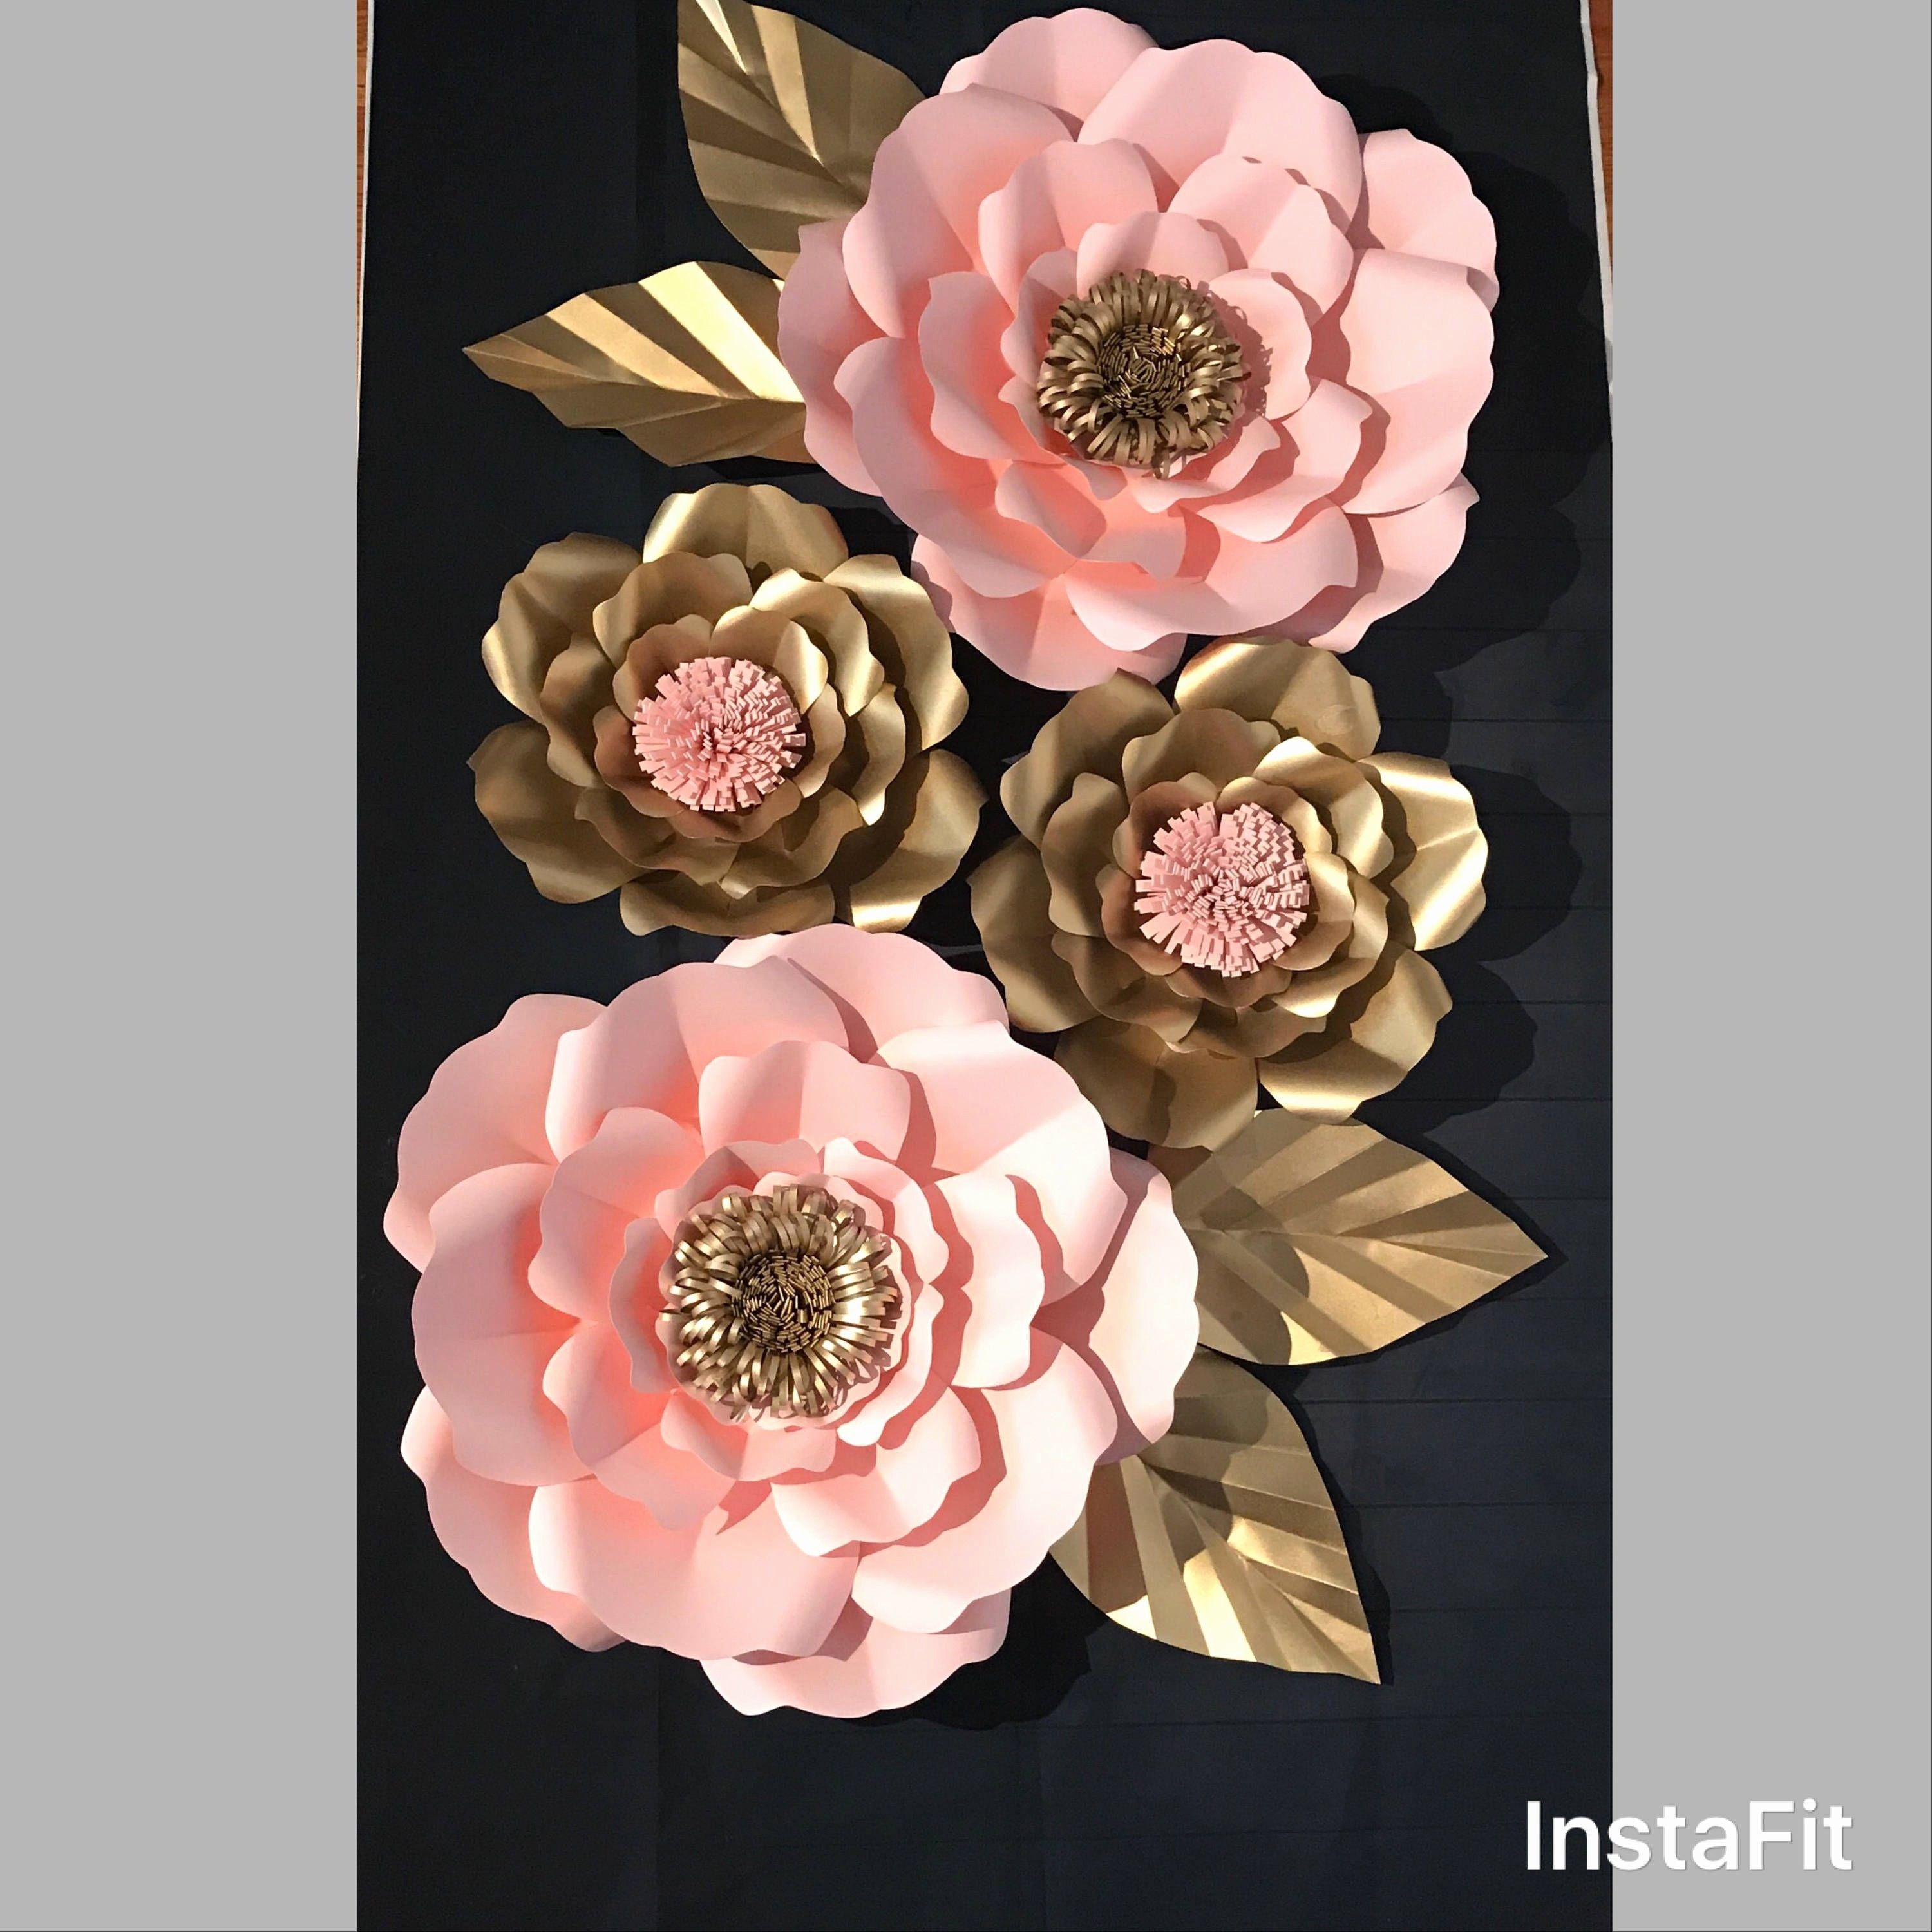 diy flower vase decoration of flower pictures awesome new diy home decor vaseh vases decorative in flower pictures luxury unique floral decor for home beautiful decor floral decor floral of